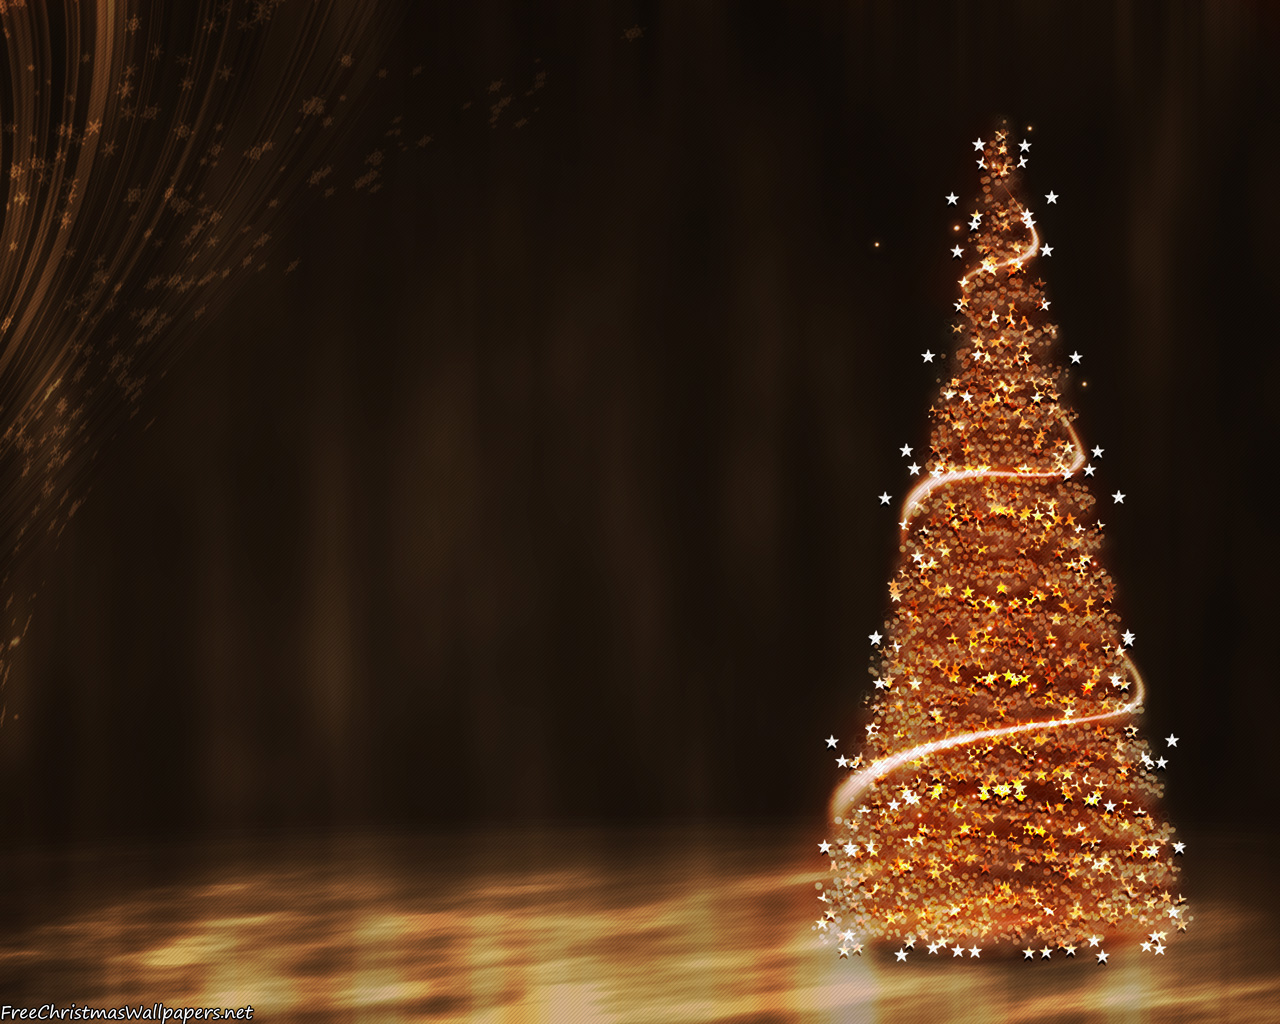 Christmas Tree Wallpaper HD Desktop 1138 - HD Wallpapers Site